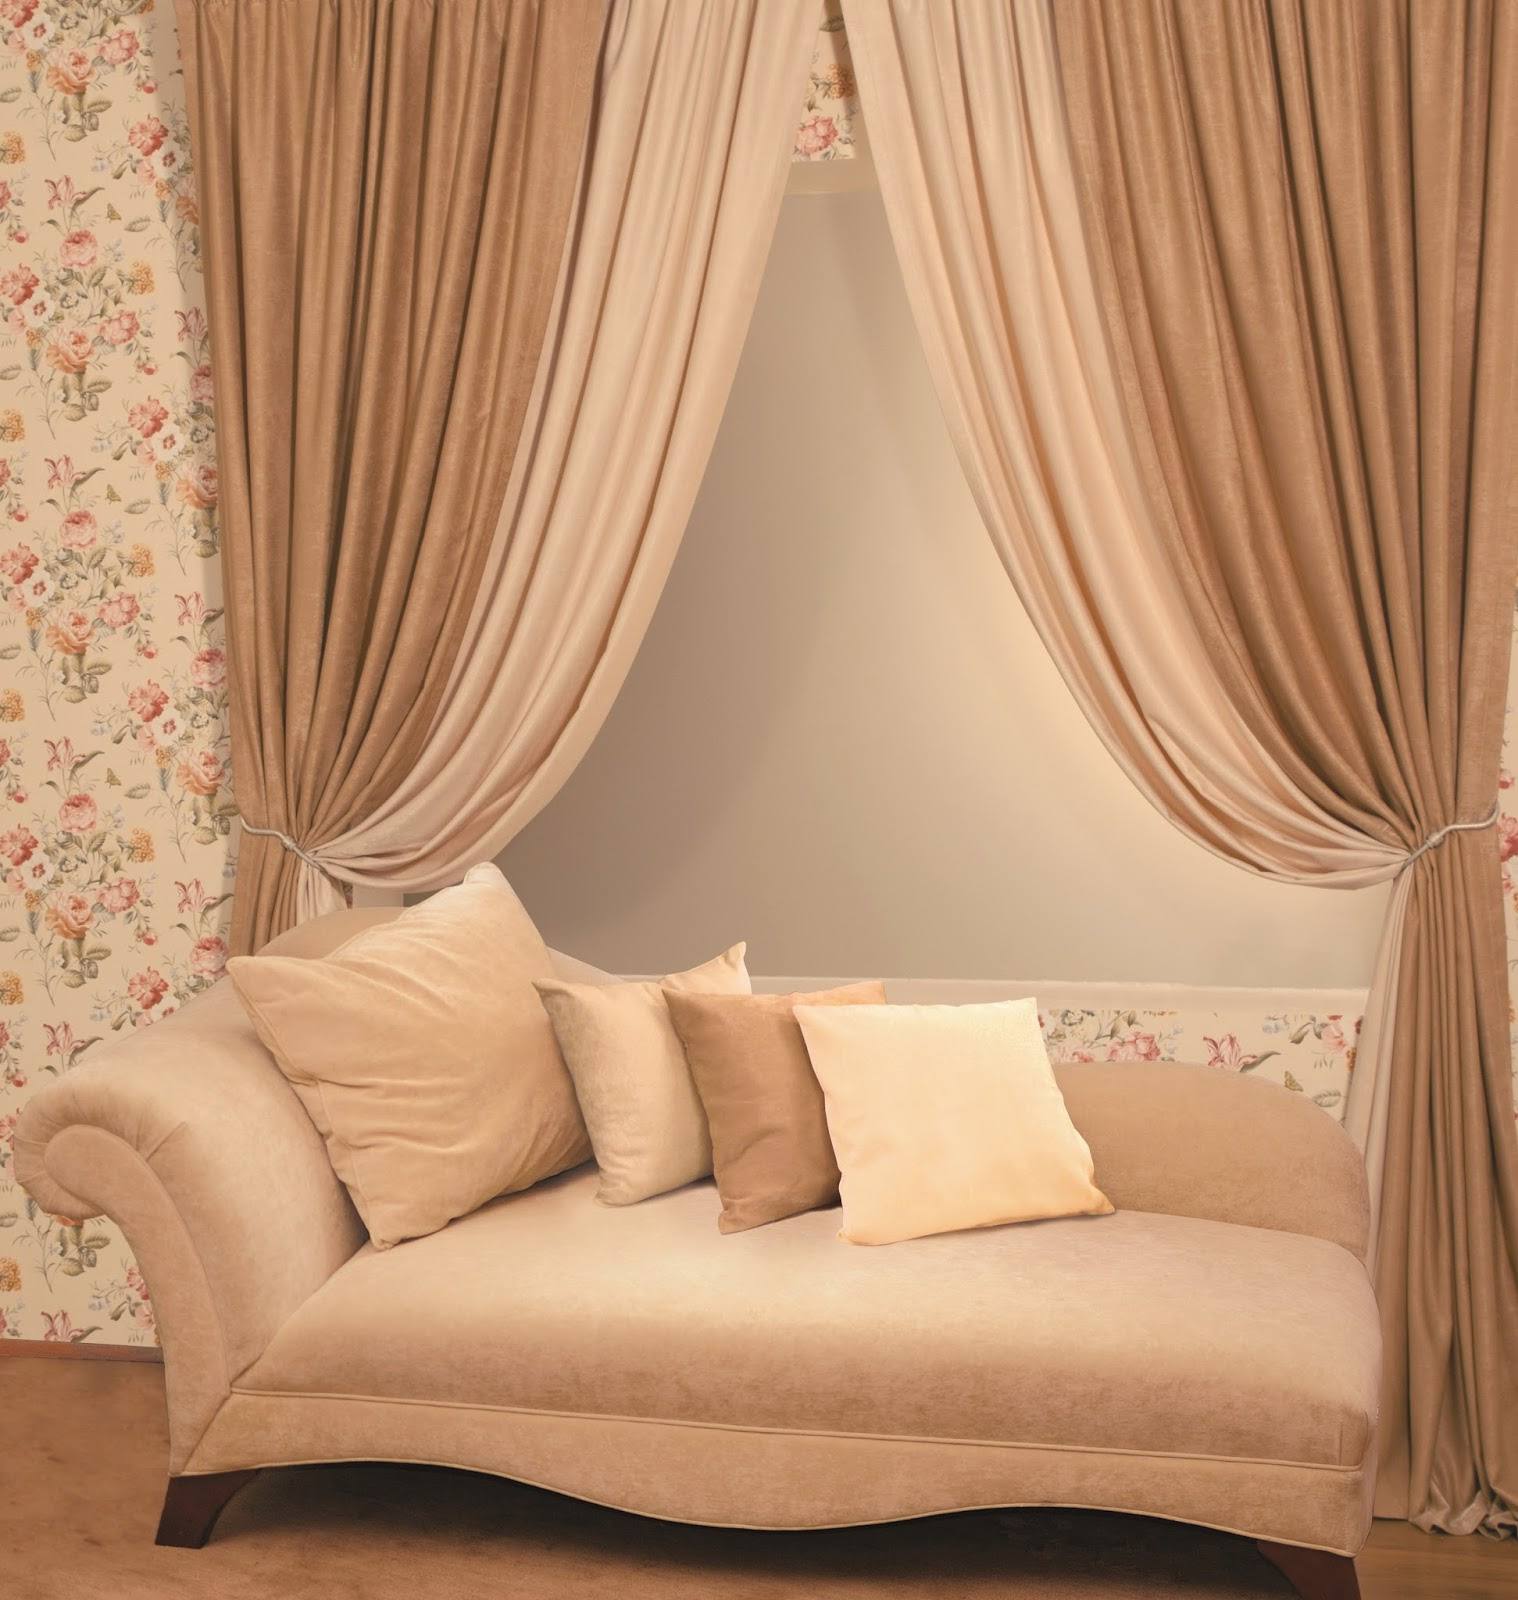 Curtains Classic style ideas,Curtains Classic designs,curtains Classic  living room,Classic Curtains for the bedroom,Top ideas for Classic curtains style